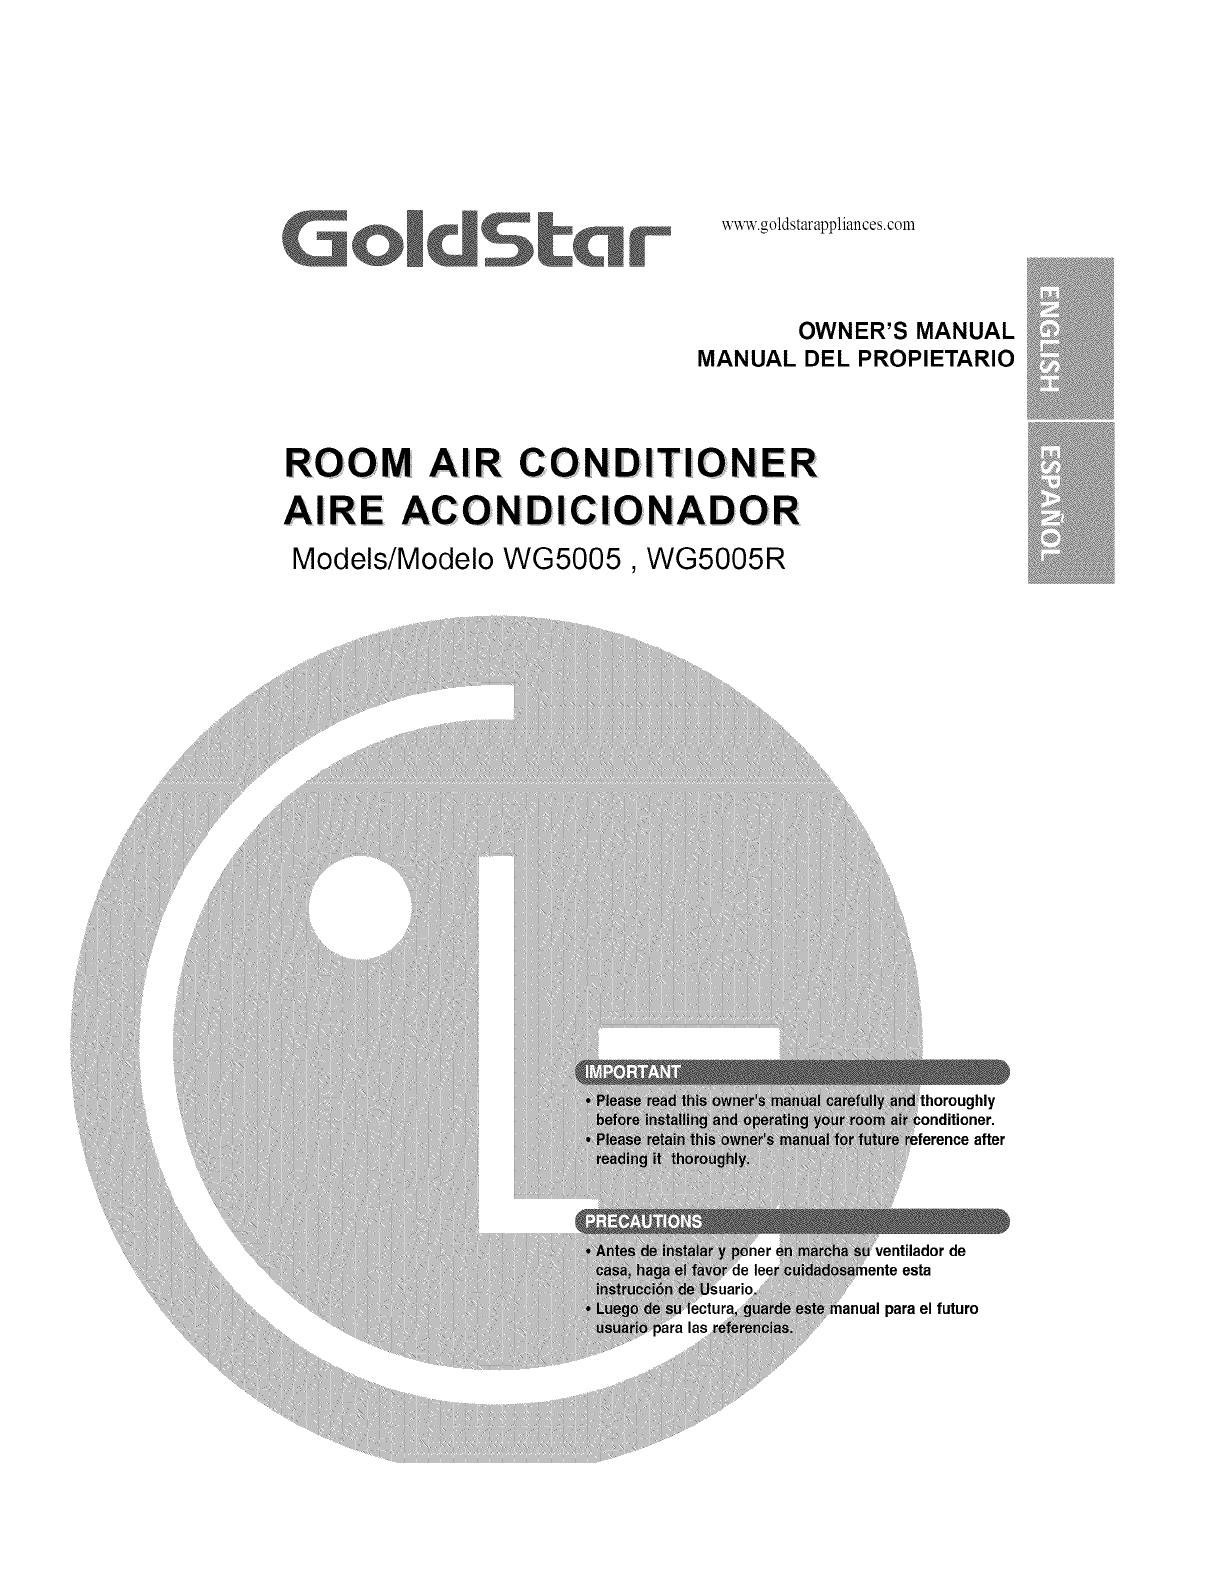 goldstar air conditioner wg5005r user guide manualsonline com trane air conditioner diagram goldstar air conditioner wiring diagram #14